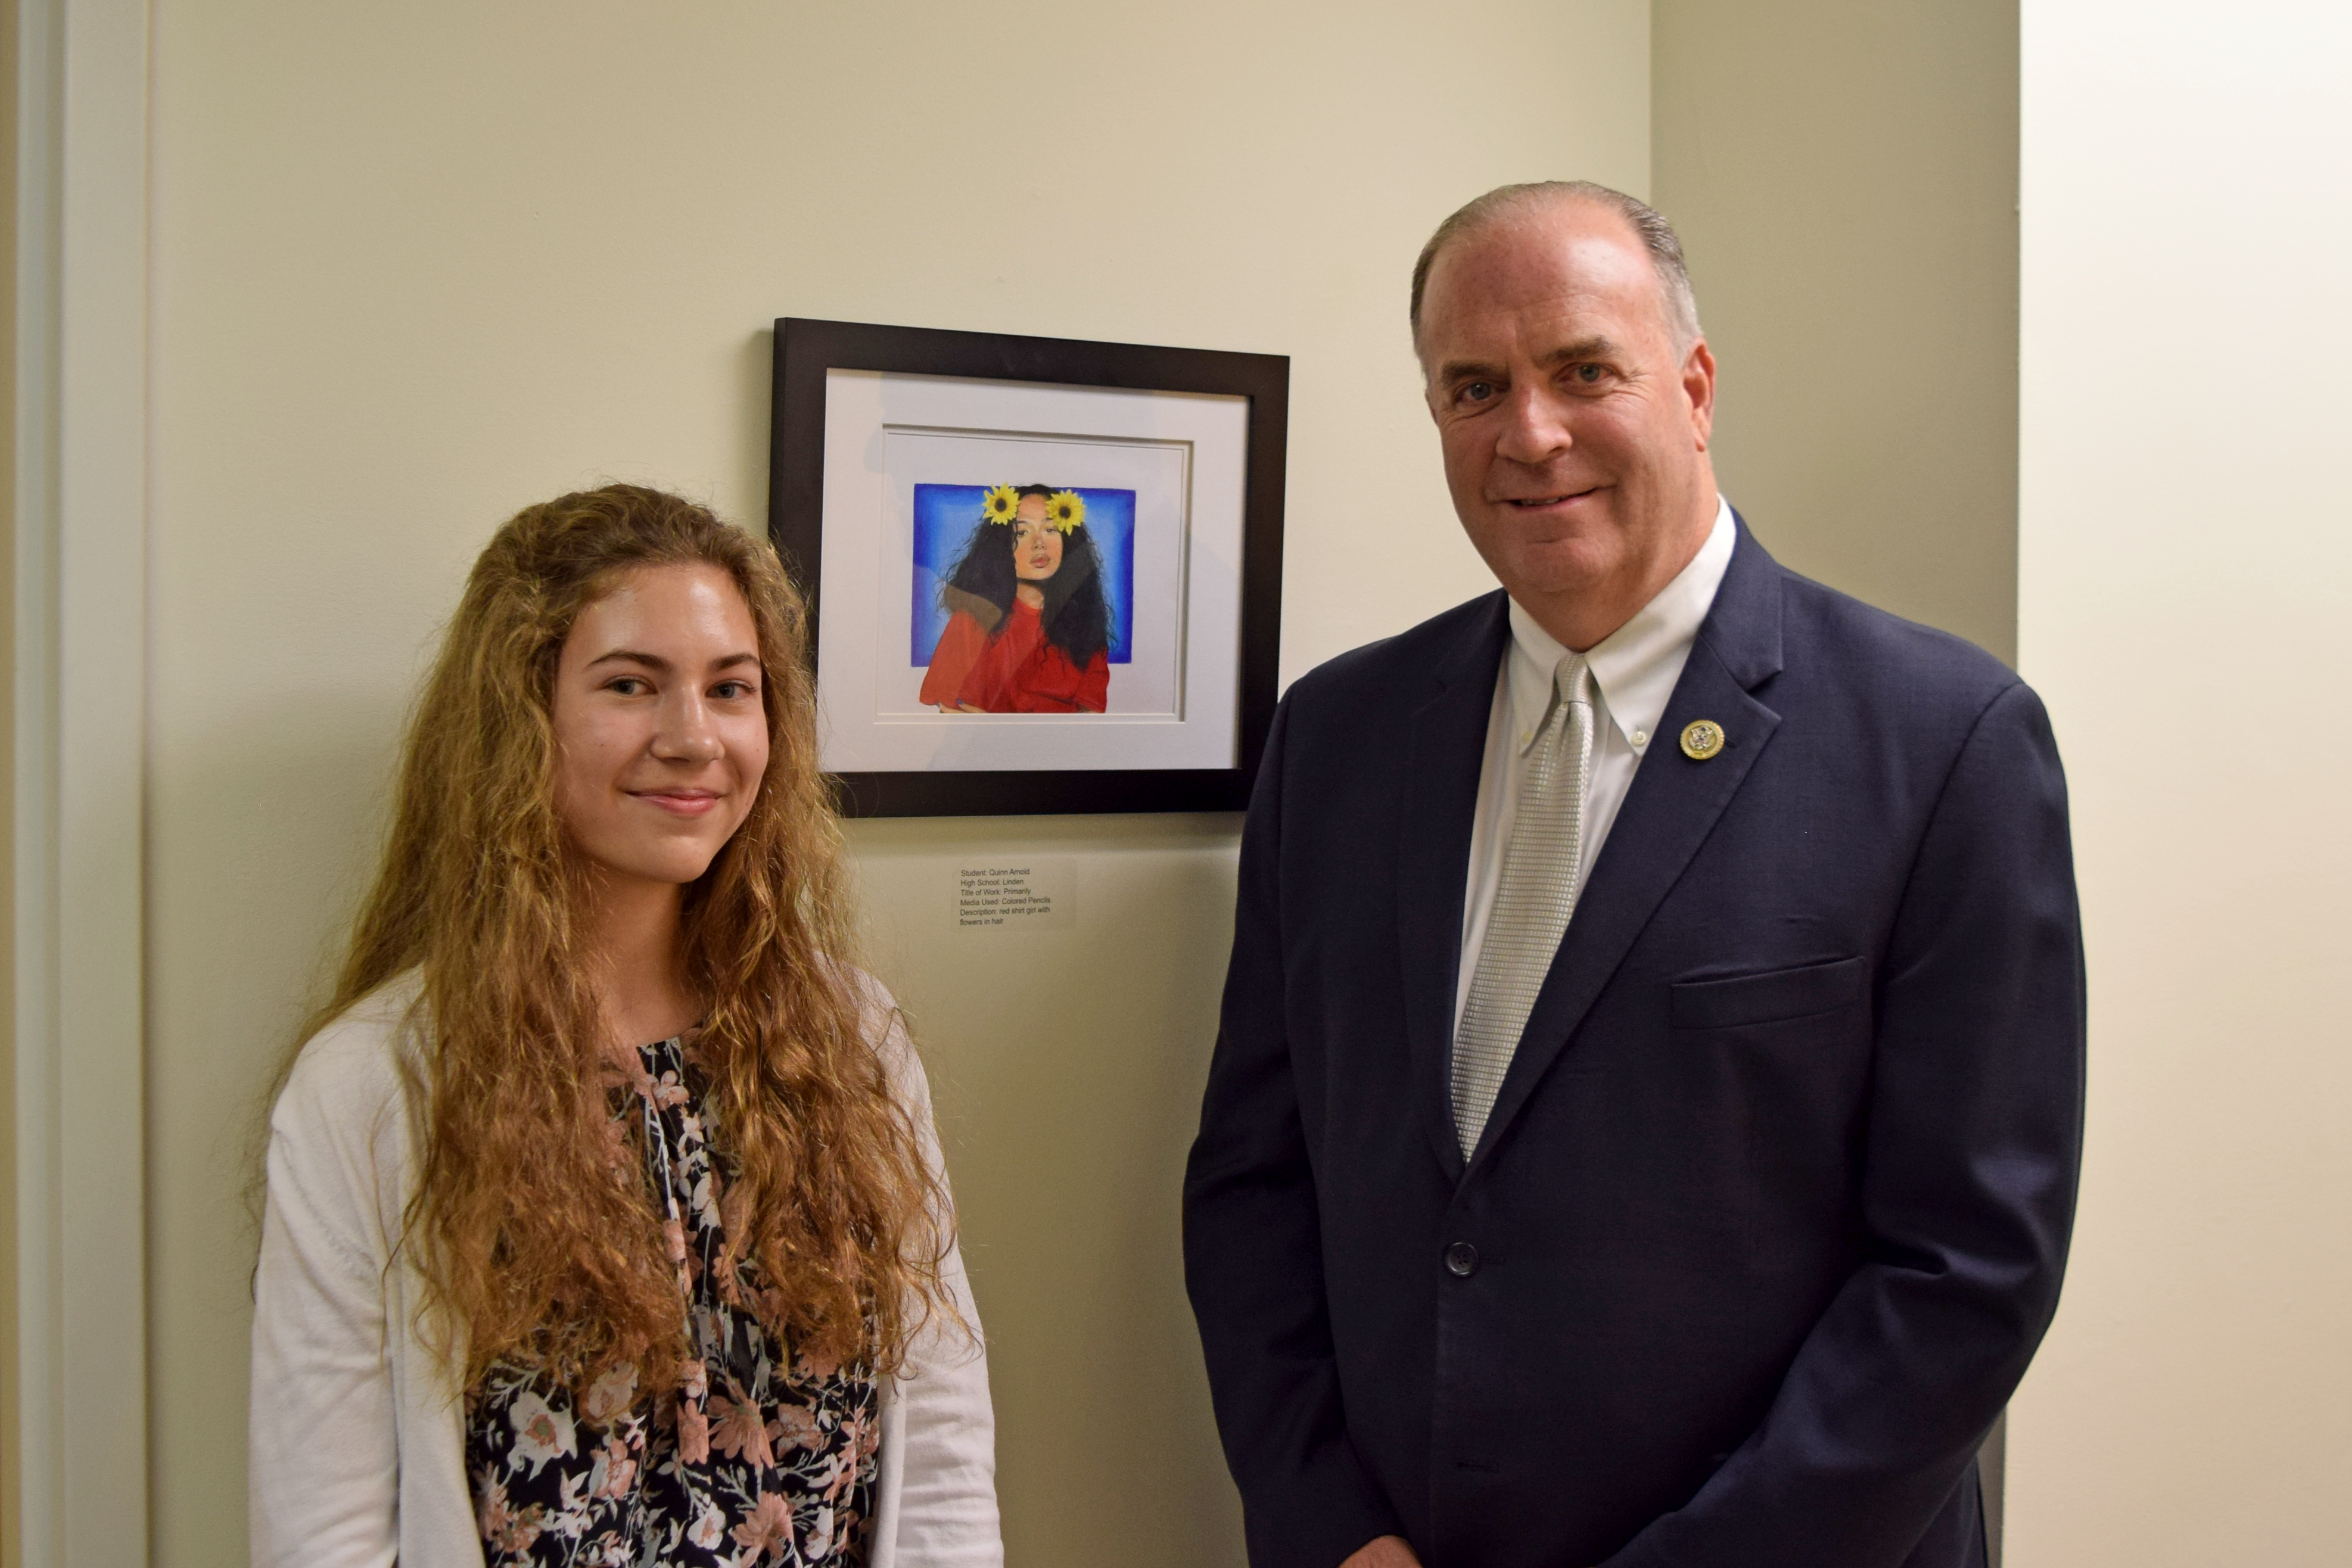 Linden high schooler's artwork heads to U.S. Capitol after winning competition